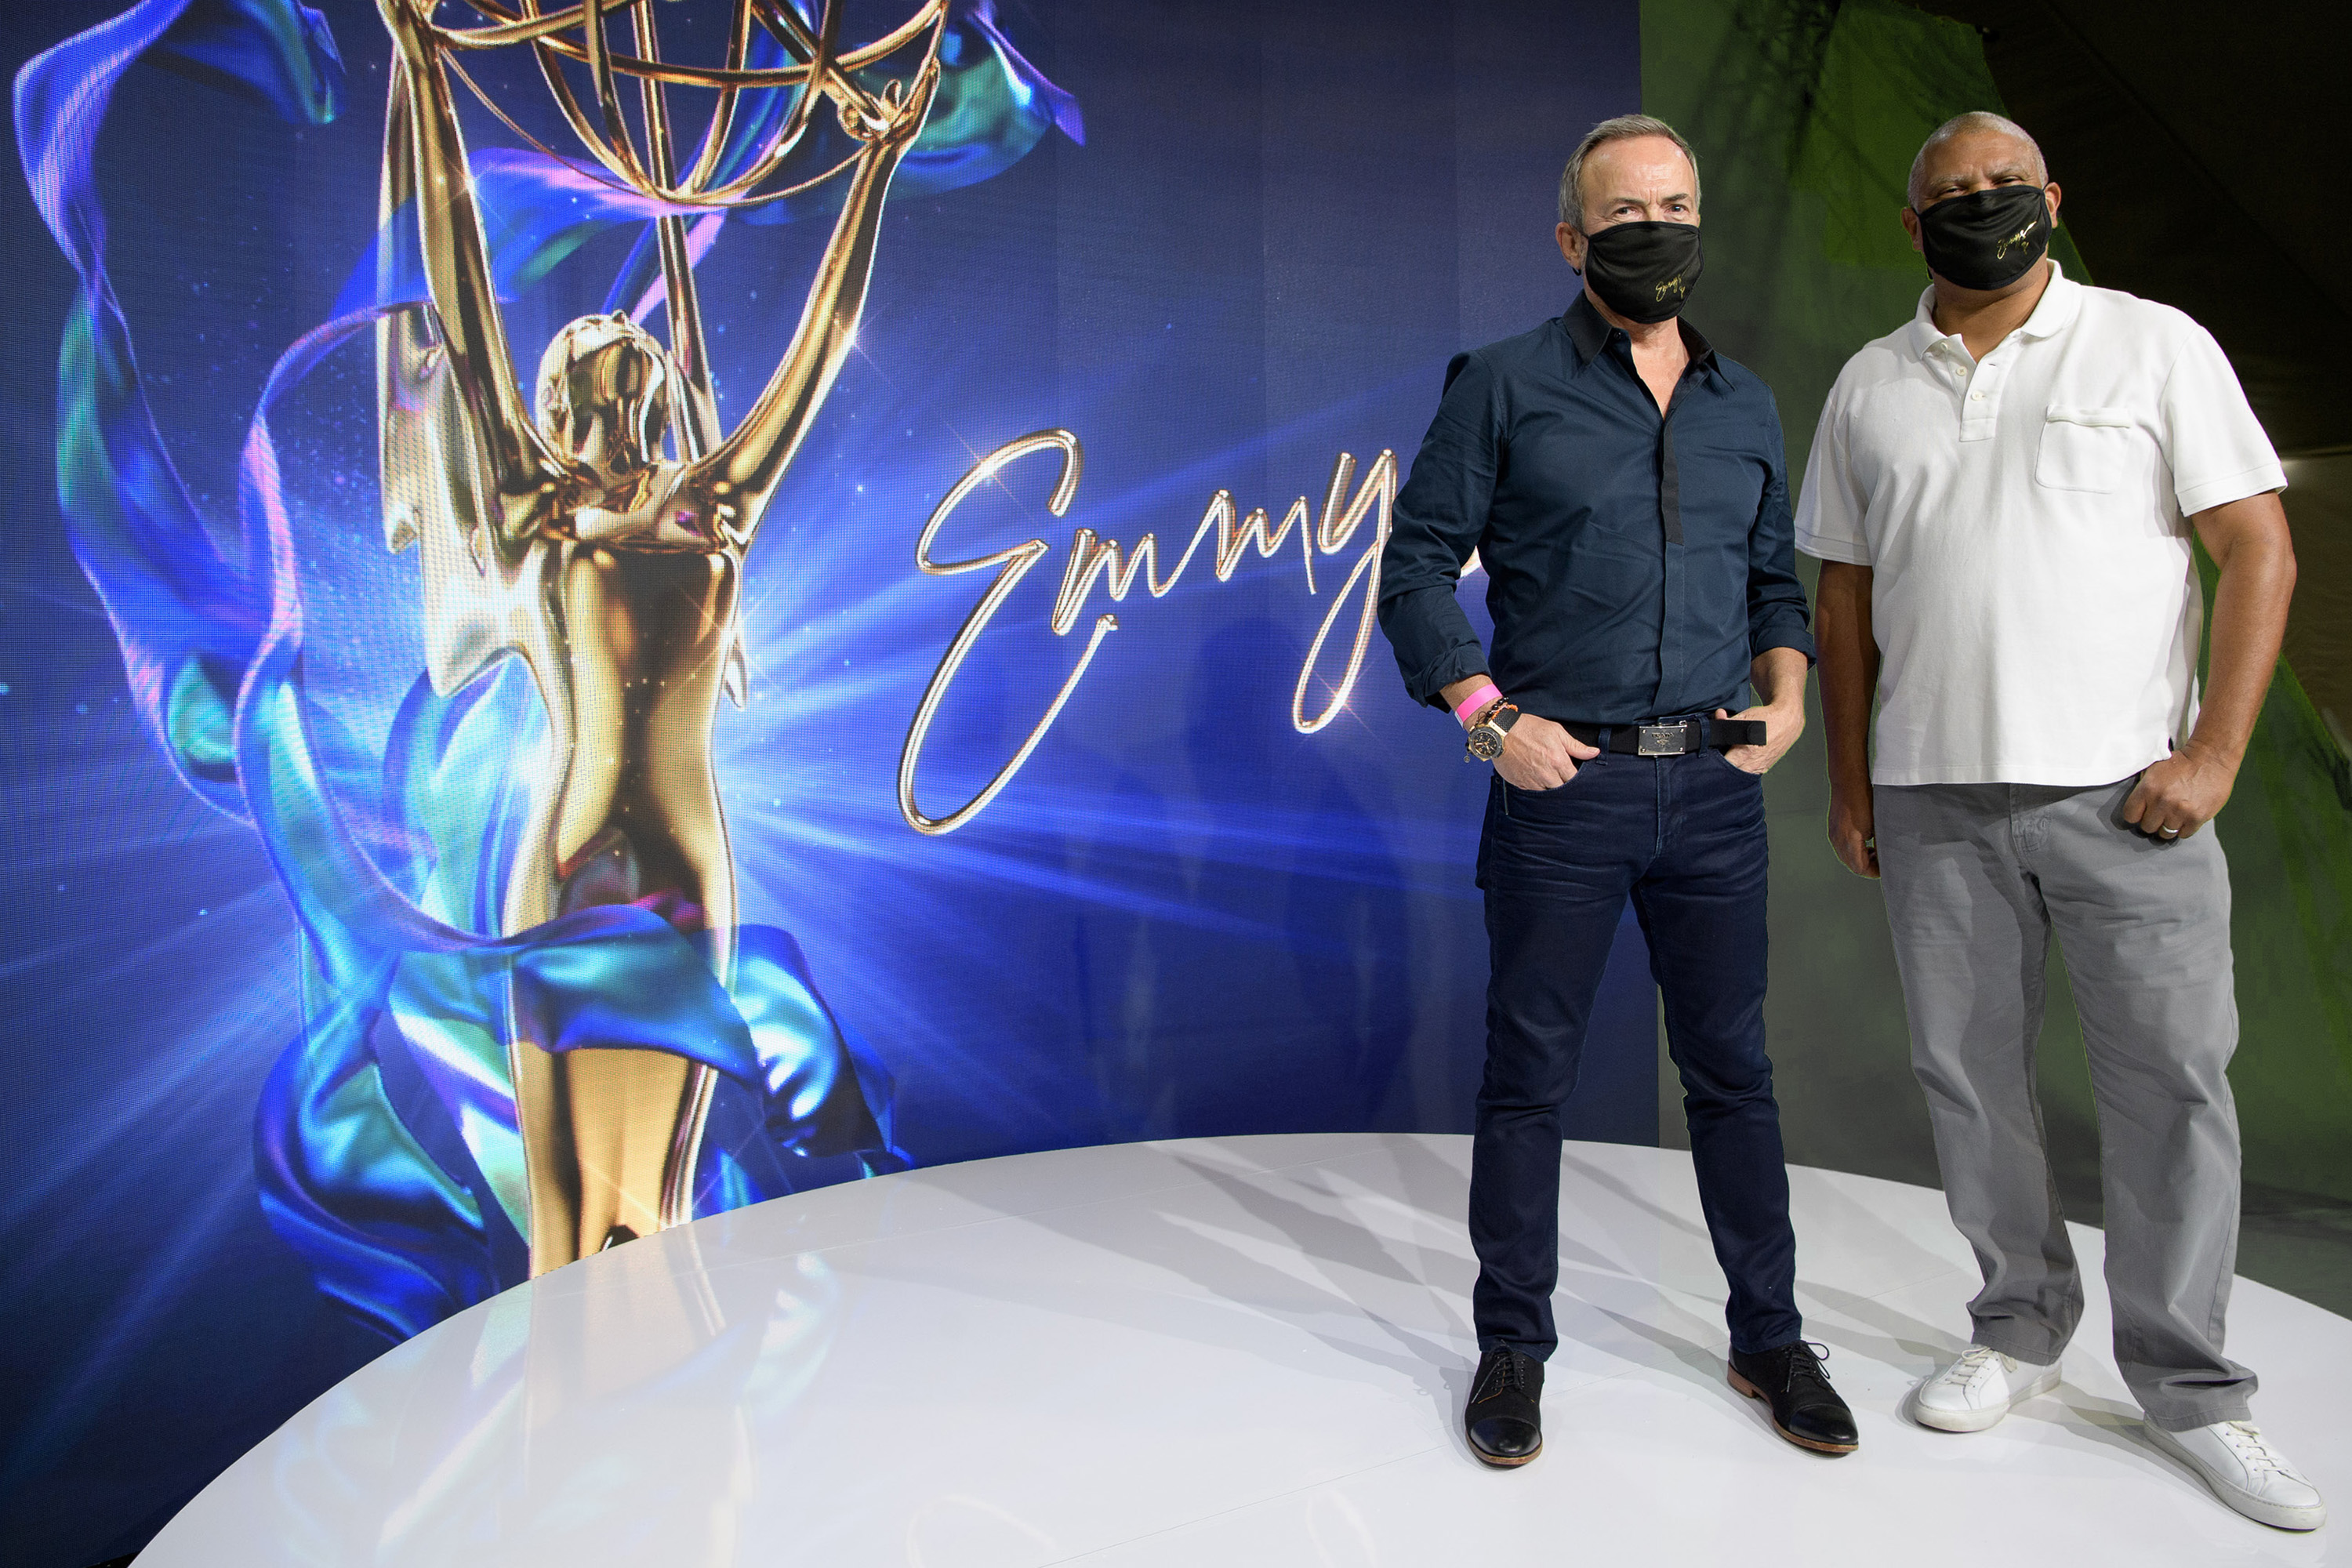 The Emmys could go wrong … maybe in fun ways